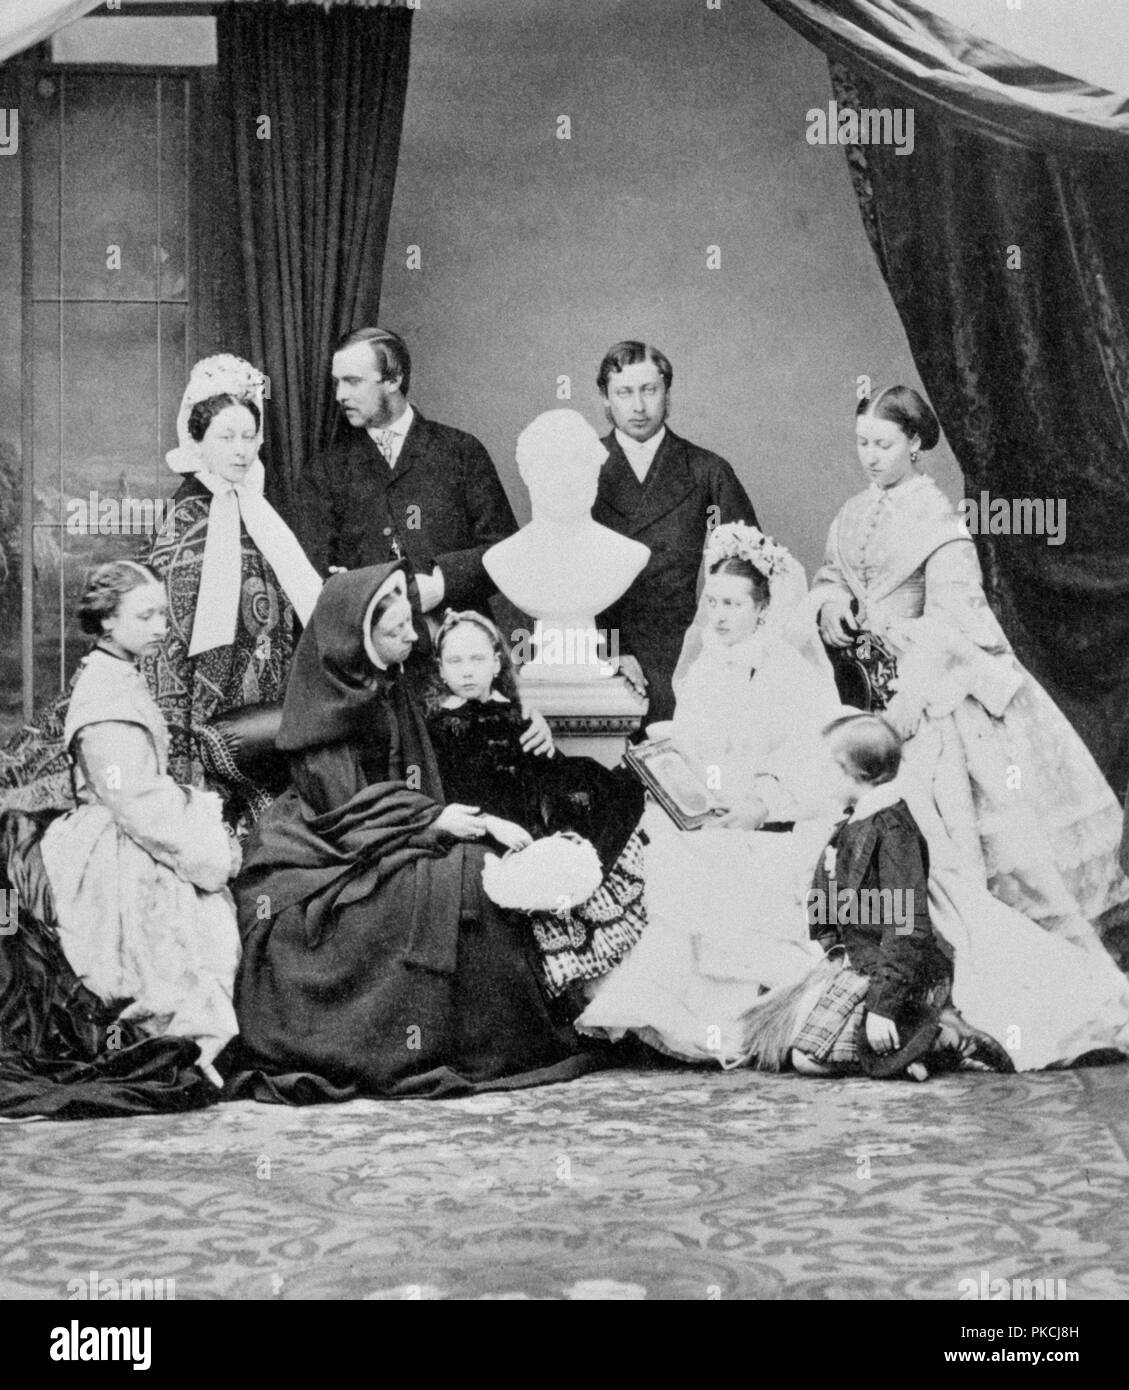 Queen Victoria and her family, Windsor, Berkshire, 1863. Photograph from a Royal Familty album at Osborne House, Isle of Wight, possibly taken at the time of the Prince of Wales' marriage. The family are arranged around a bust of Albert, the late Prince Consort.  Standing (left to right): possibly Crown Princess of Prussia (1840-1901); Grand Duke Louis of Hesse (1837-1892); Prince Albert Edward, Prince of Wales (1841-1910); Princess Helena (1846-1923). In front (left to right): Princess Alice (1843-1878); Queen Victoria (1819-1901); Princess Beatrice (1857-1944); Princess Alexandra of Denmark, Stock Photo